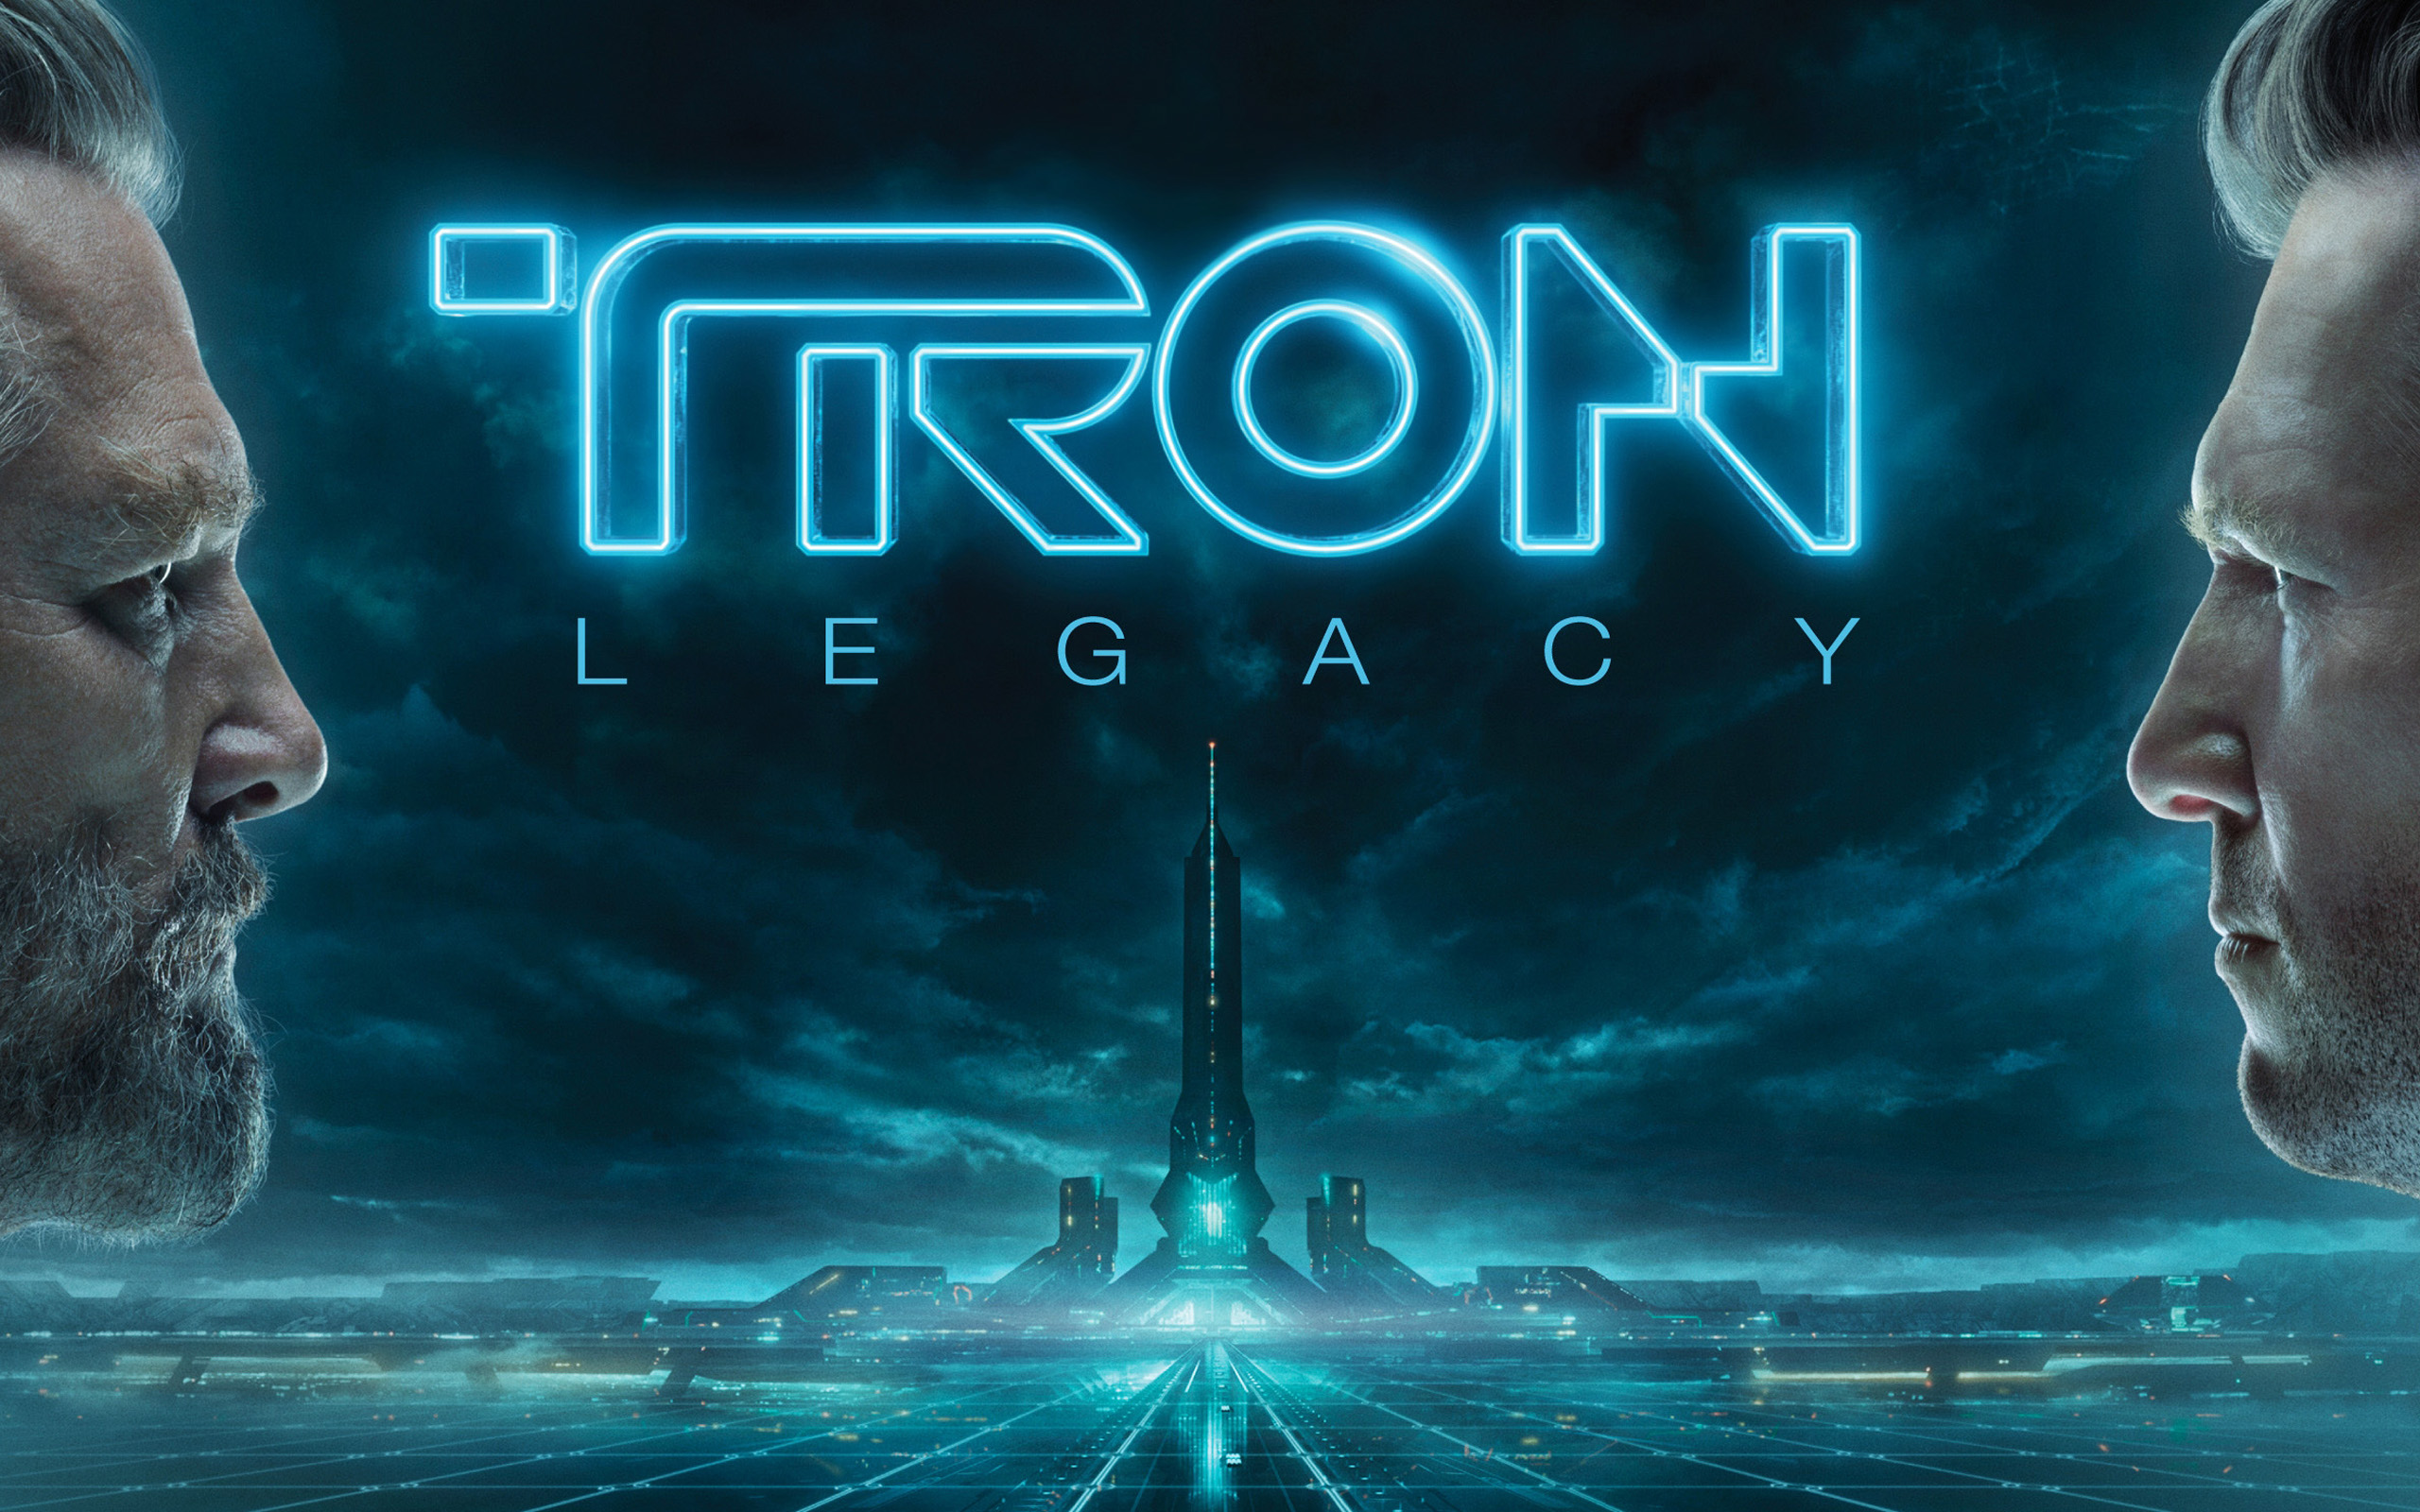 tron legacy wallpaper 3 | wallpapersbq